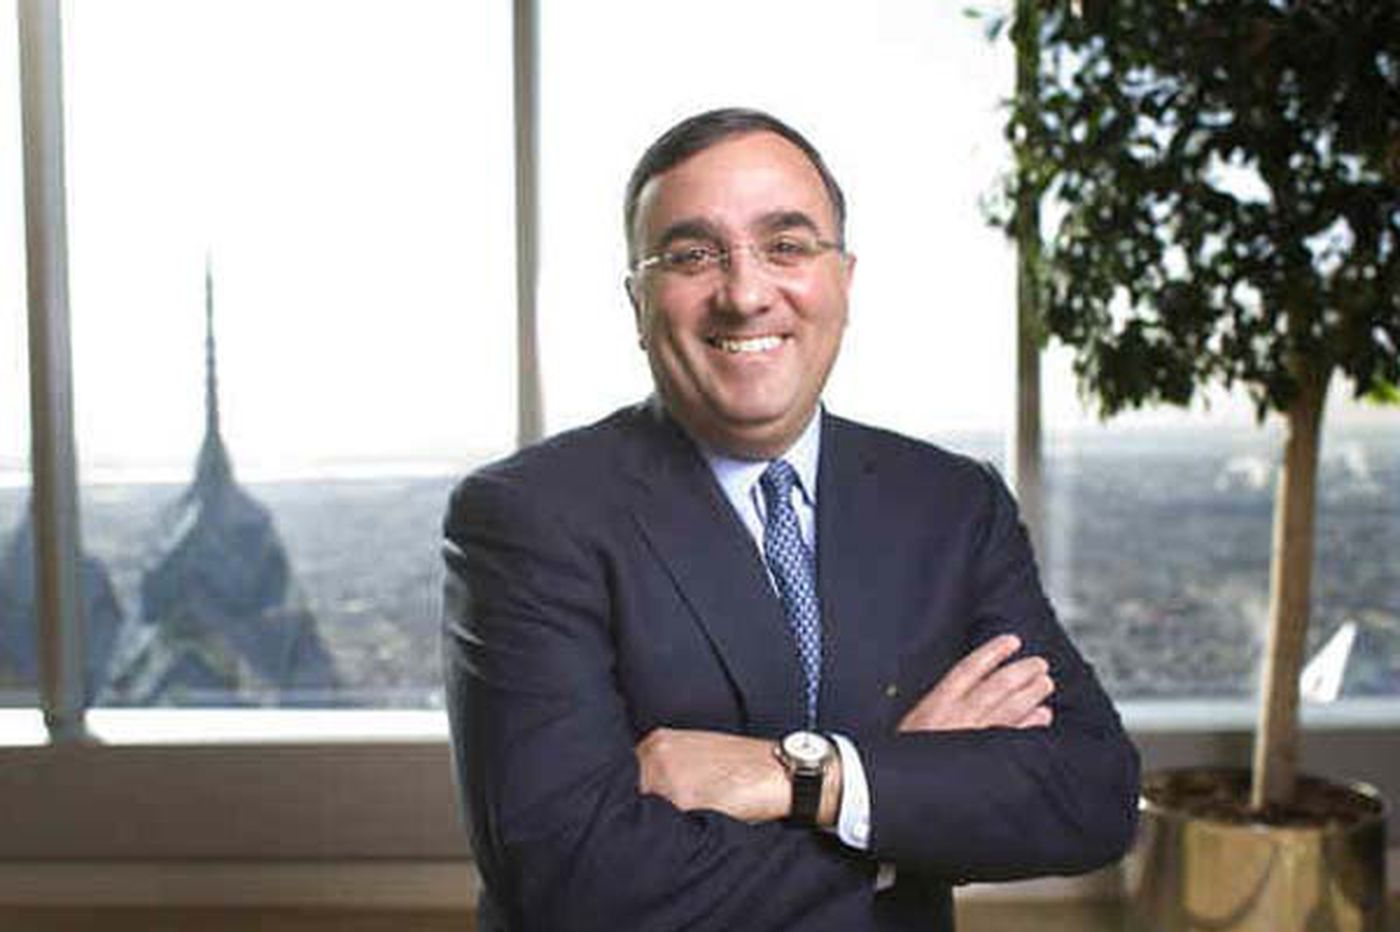 In world of CFOs, Comcast's Angelakis highly rated